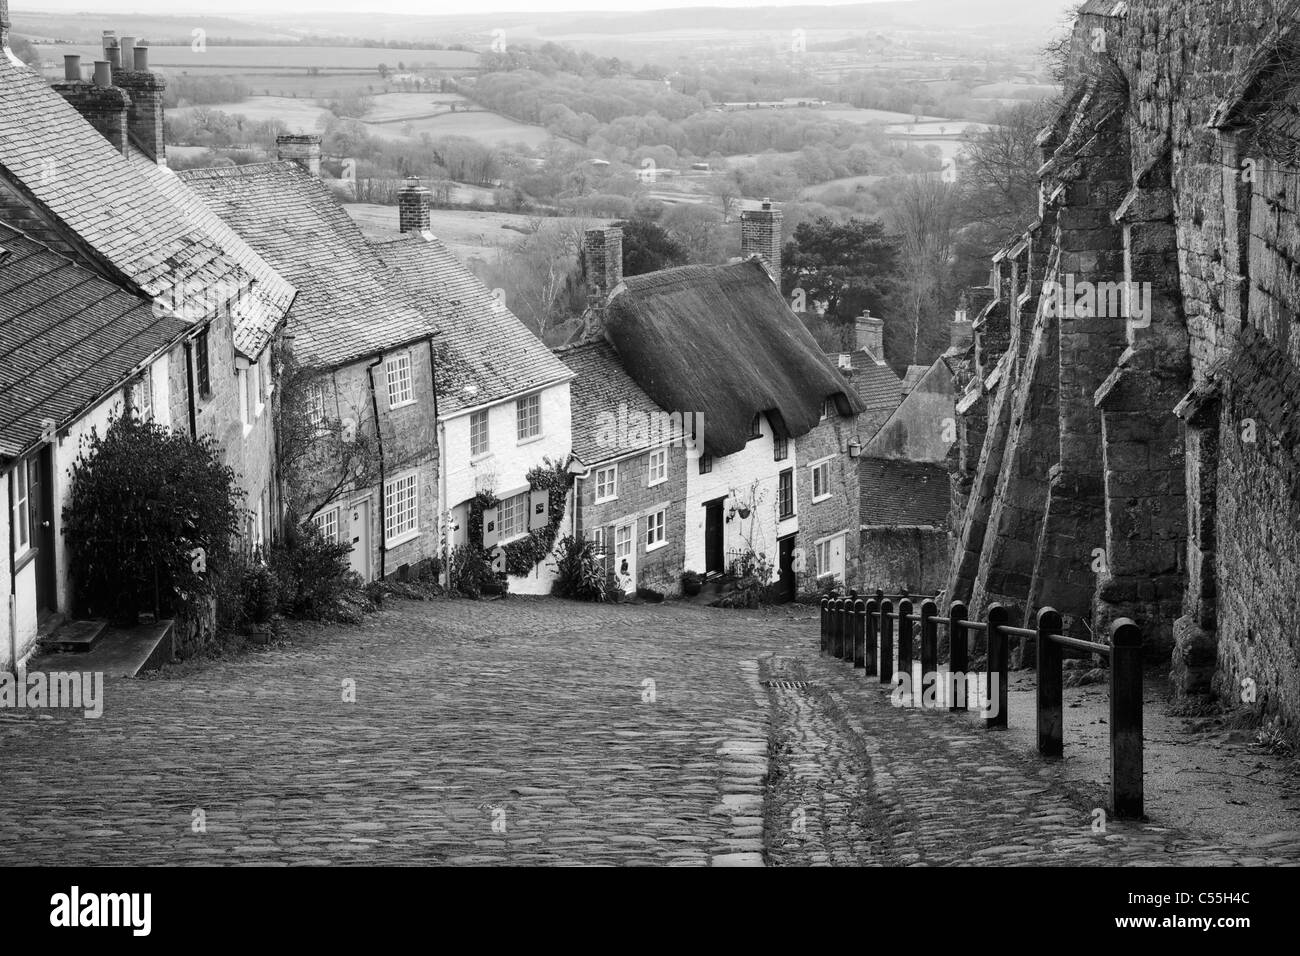 Cottages on a Hill, Golden Hill, Shaftesbury, Dorset, England - Stock Image